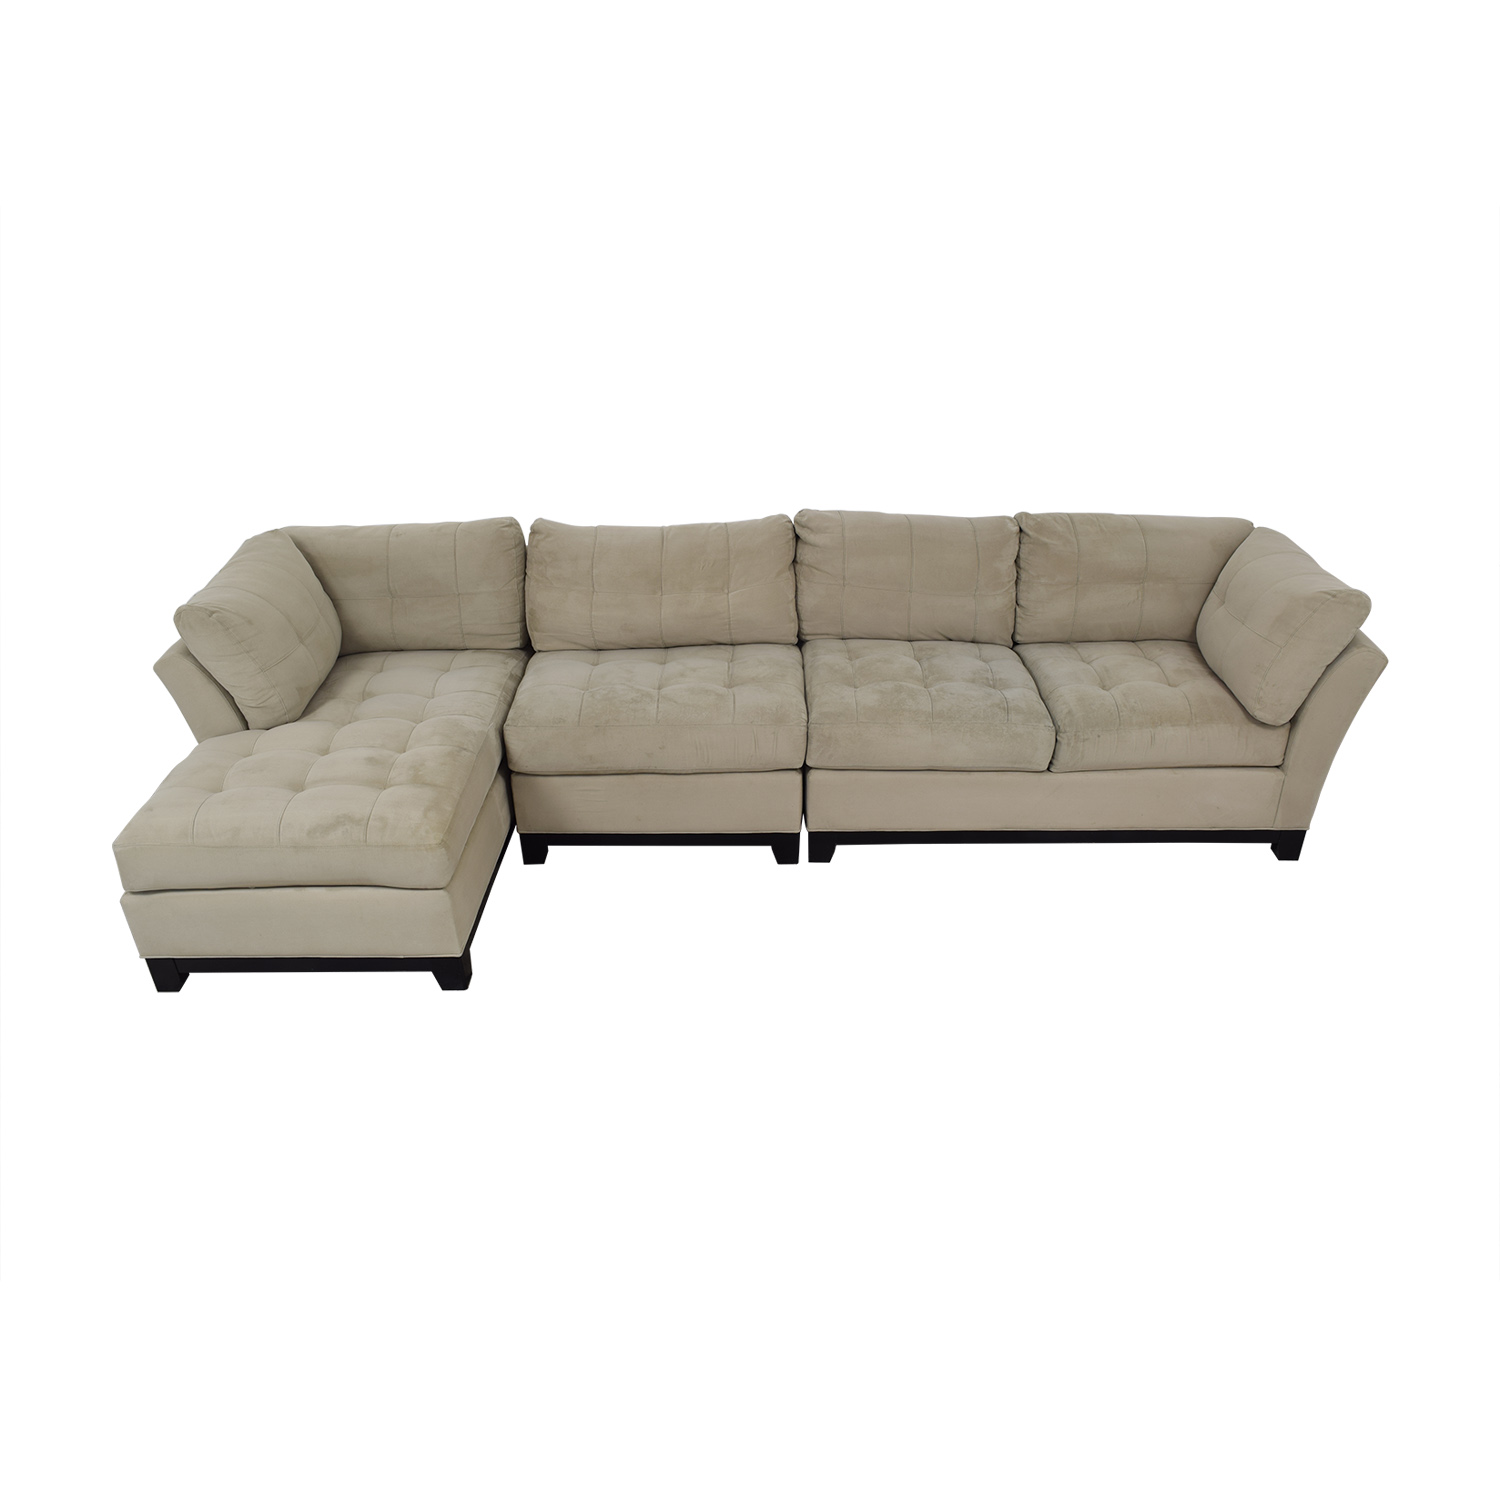 Cindy Crawford Home Metropolis Three Piece Sectional Sofa / Sofas